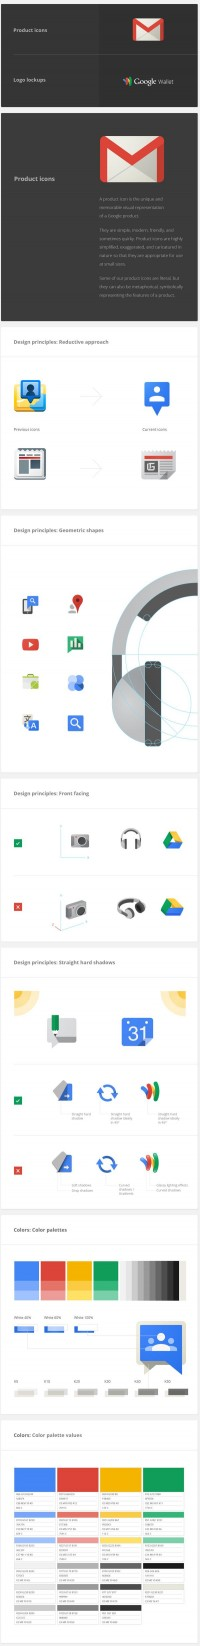 Design Inspiration: Google Visual Assets Guidelines - Part 1 - Designer First